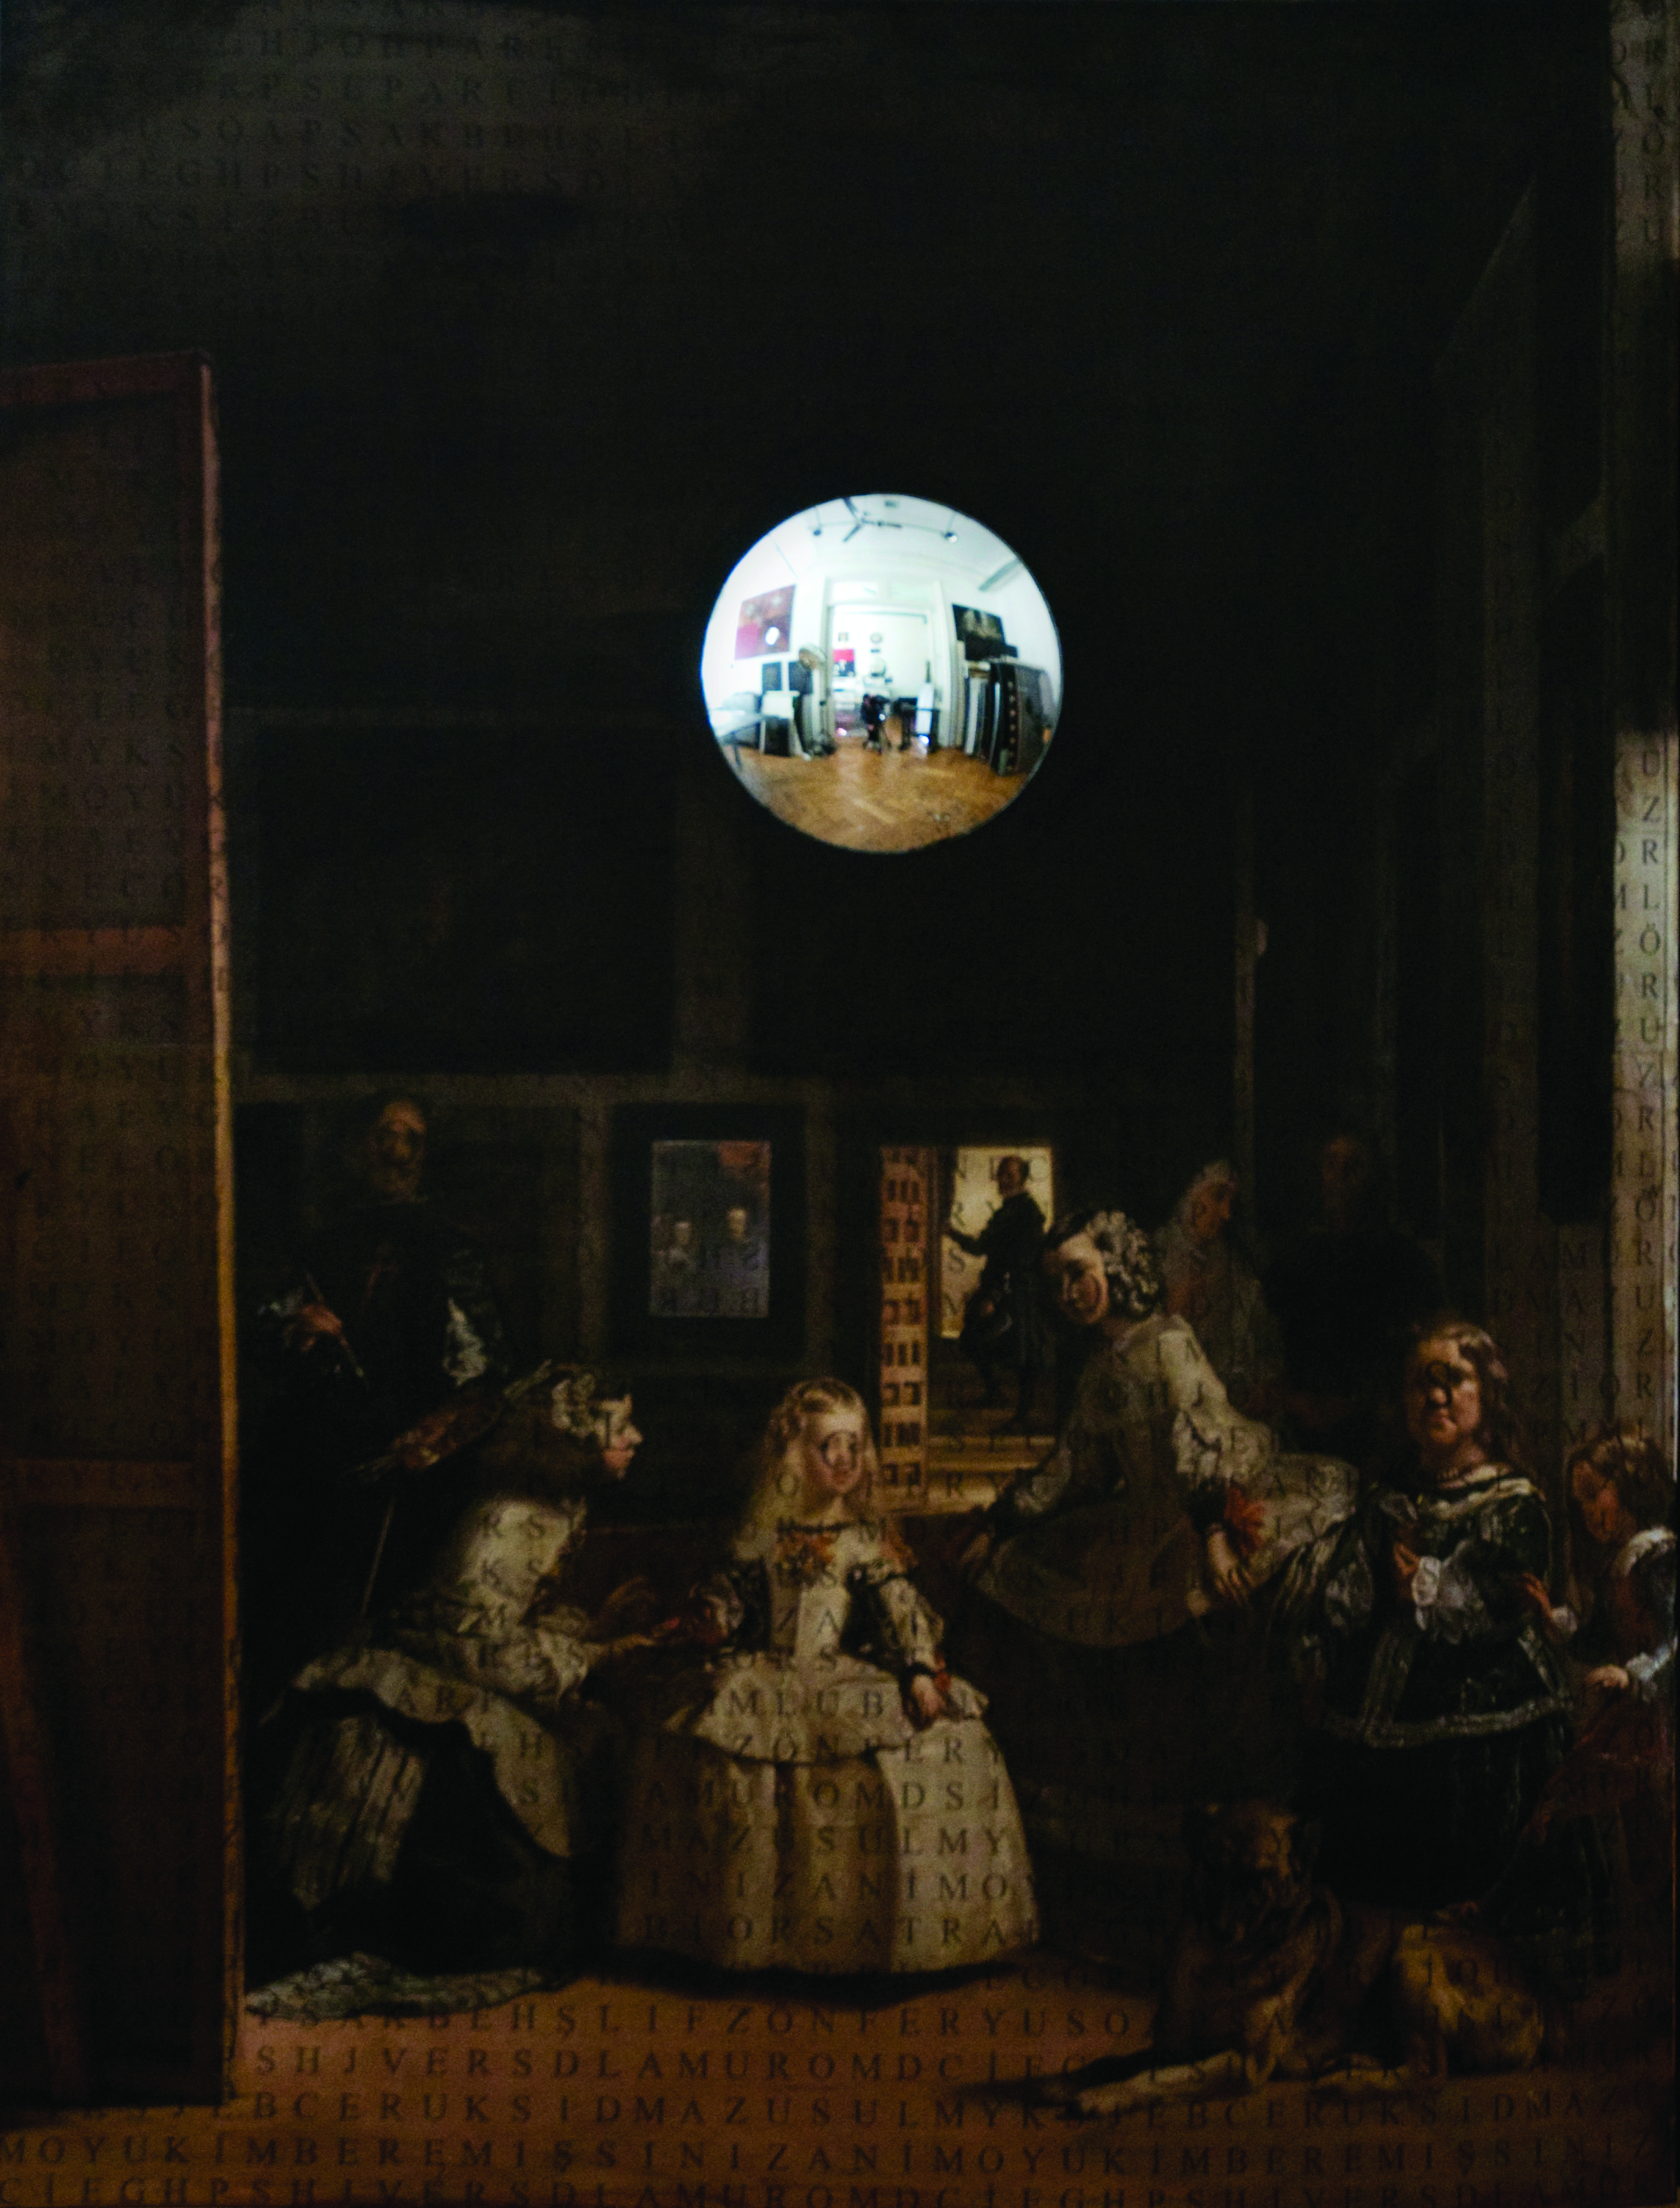 Las Meninas (Sentences, Things and Letters) | 1999 | Appopriation Series | Mixed Technique and Convex Mirror on Canvas | 150x120 cm